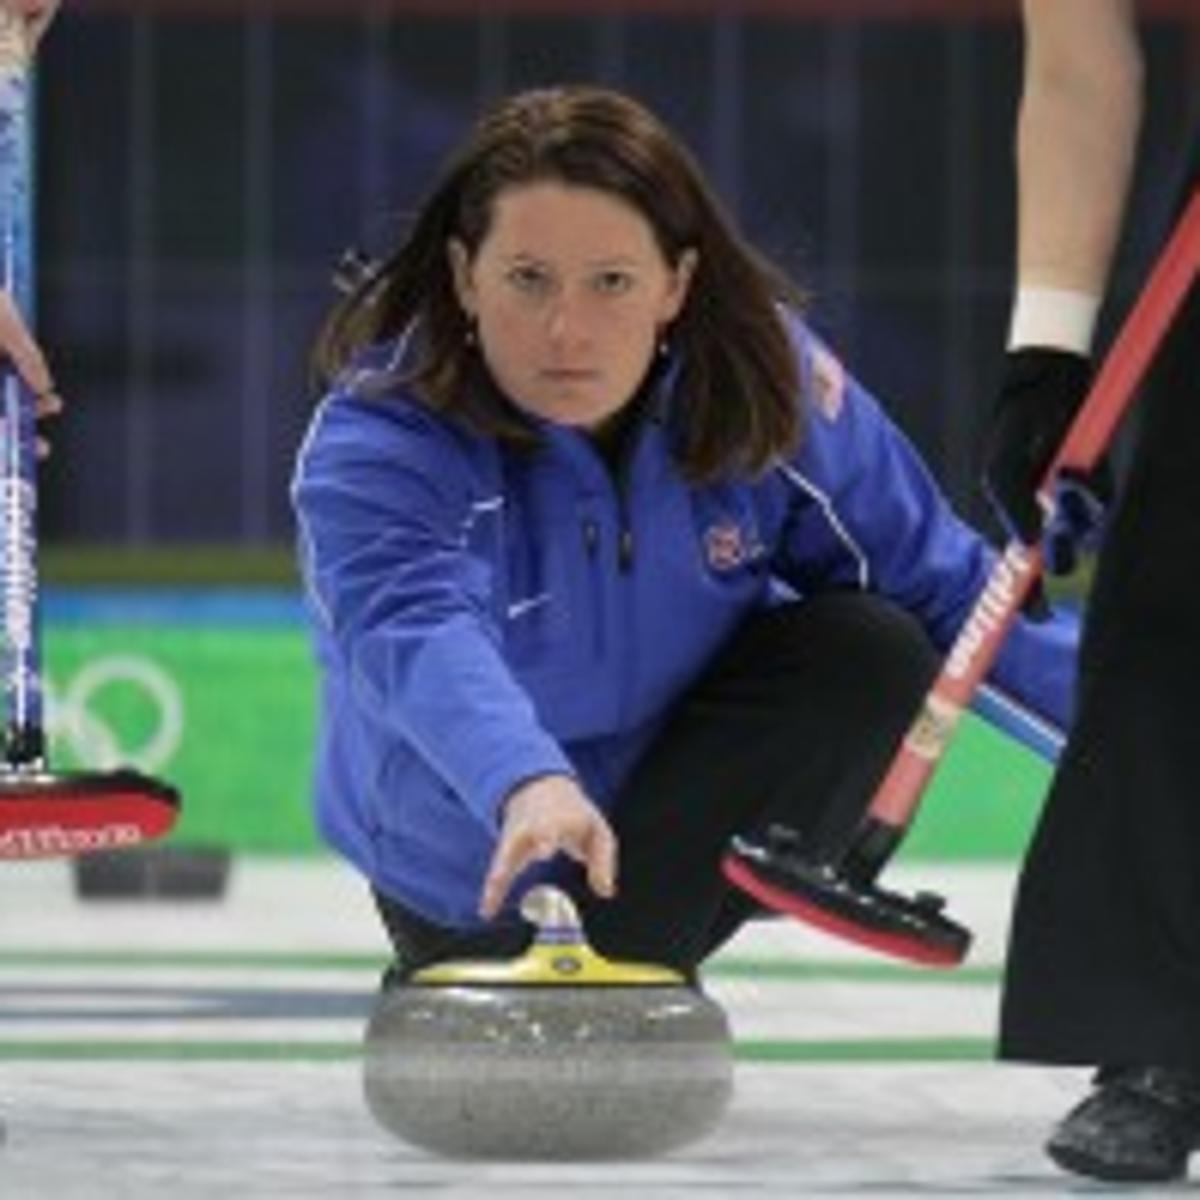 Anette Norberg curling: mccormick aims for another medal at world